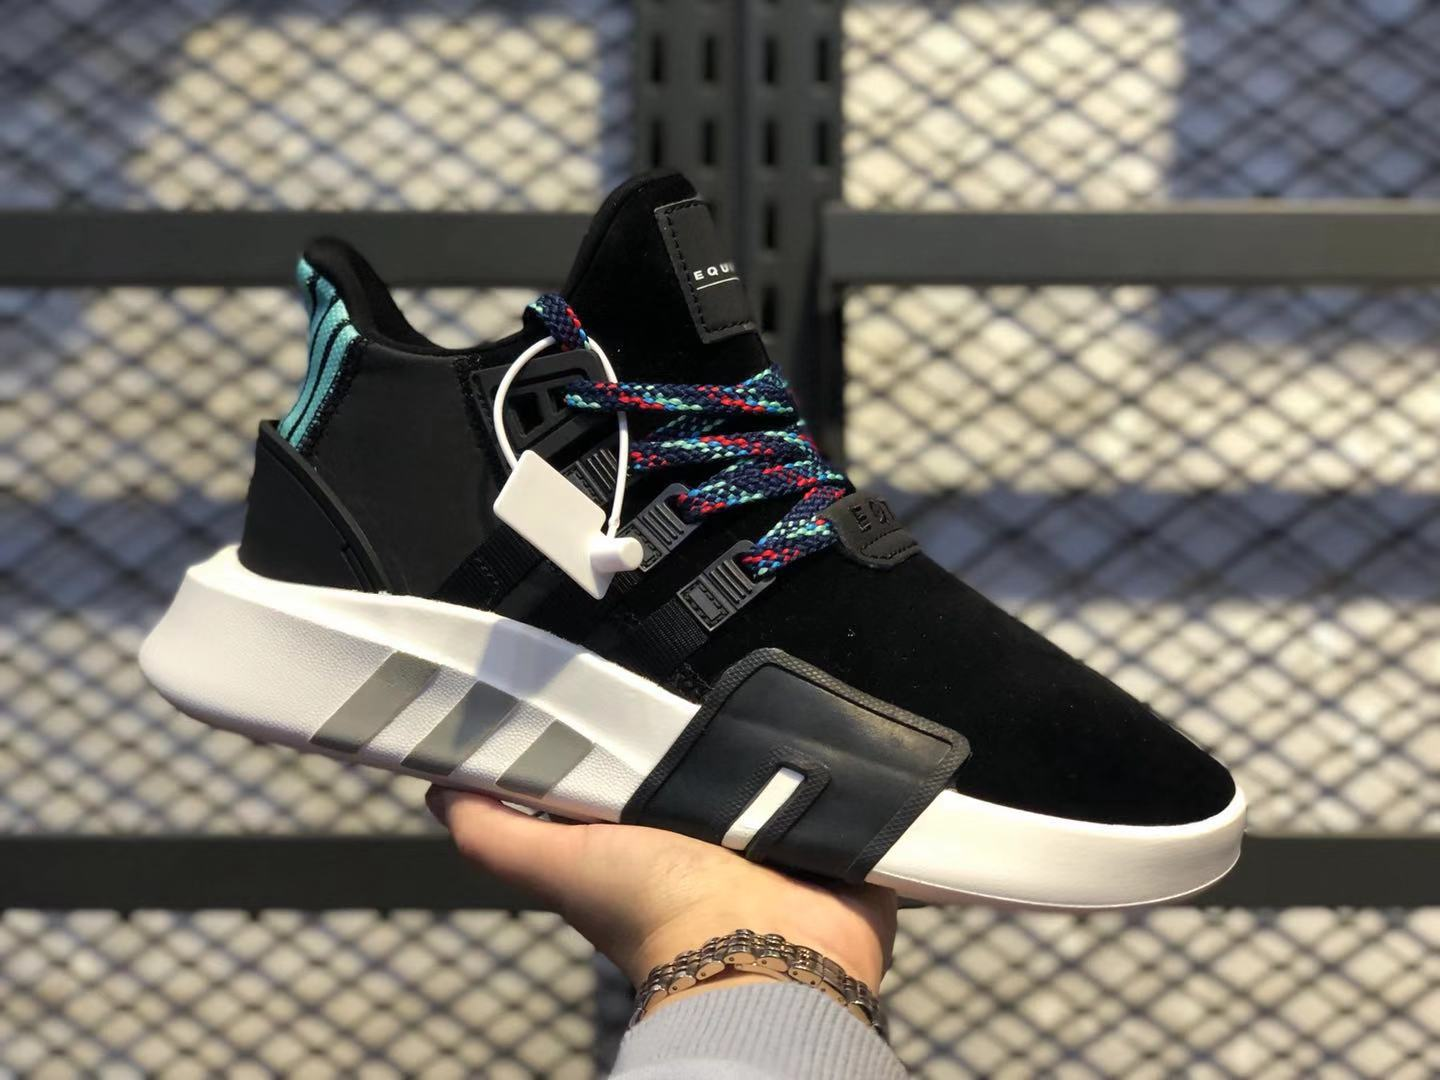 Adidas EQT Bask ADV Black/Lake Blue Basketball Shoes Free Shipping